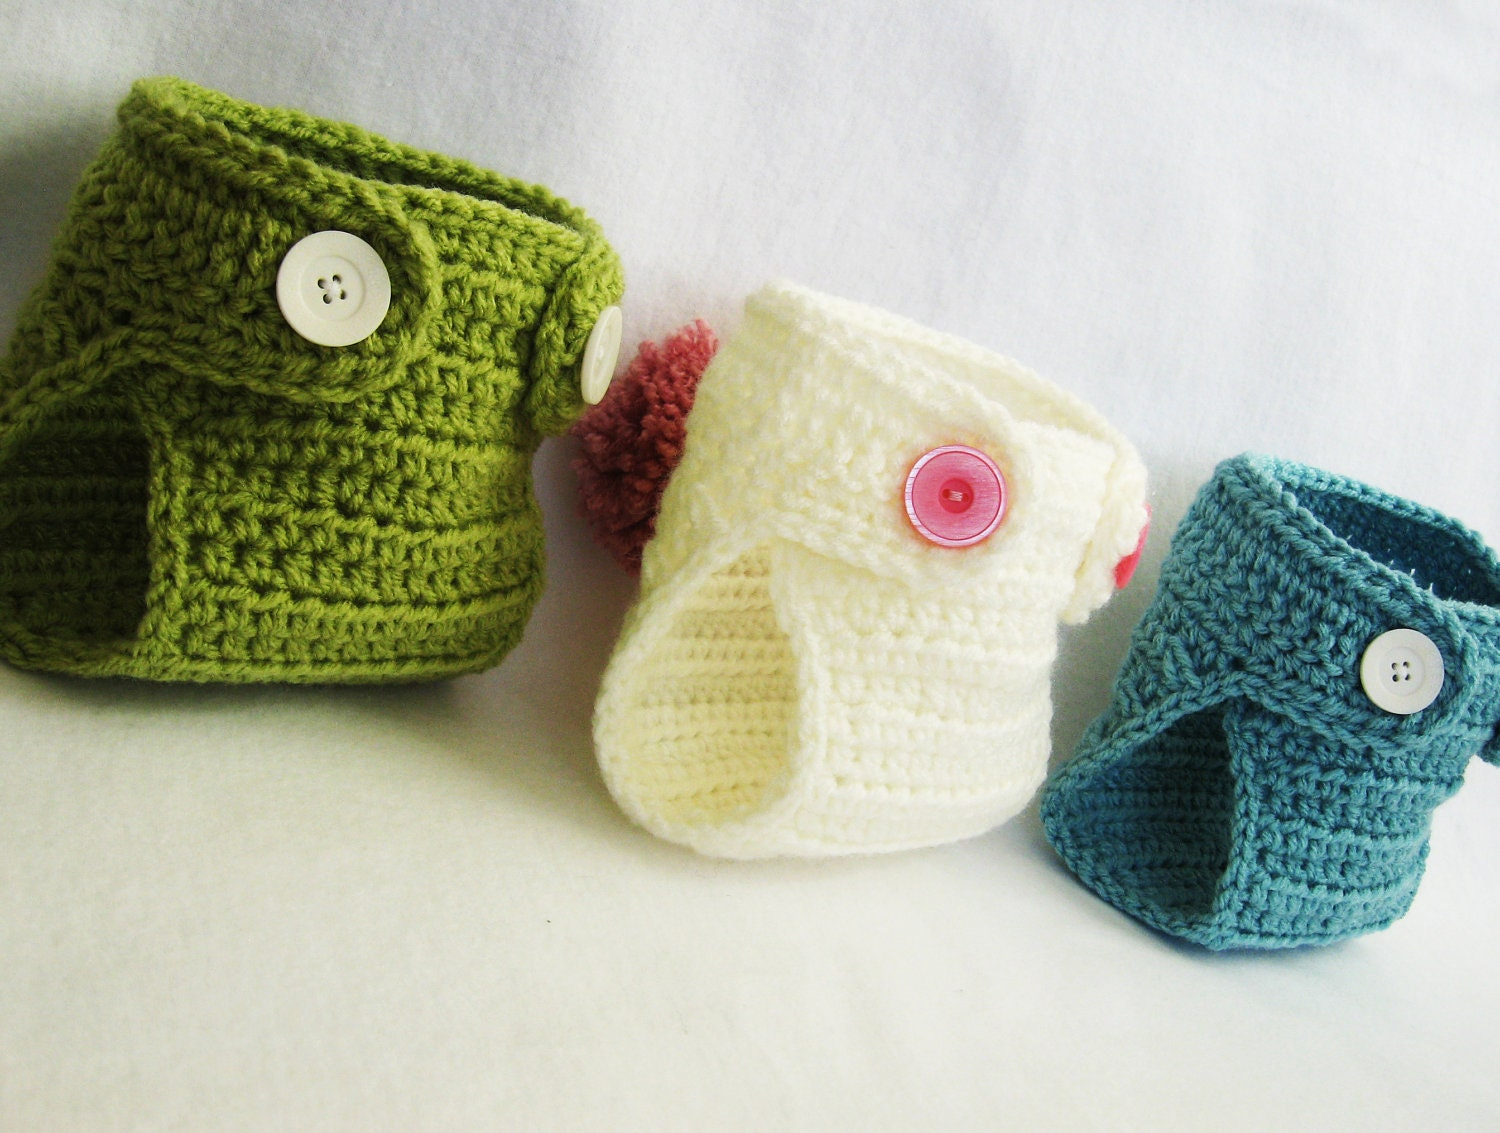 Crochet Patterns Diaper Covers : Crochet Diaper Cover Pattern - All For Crochet